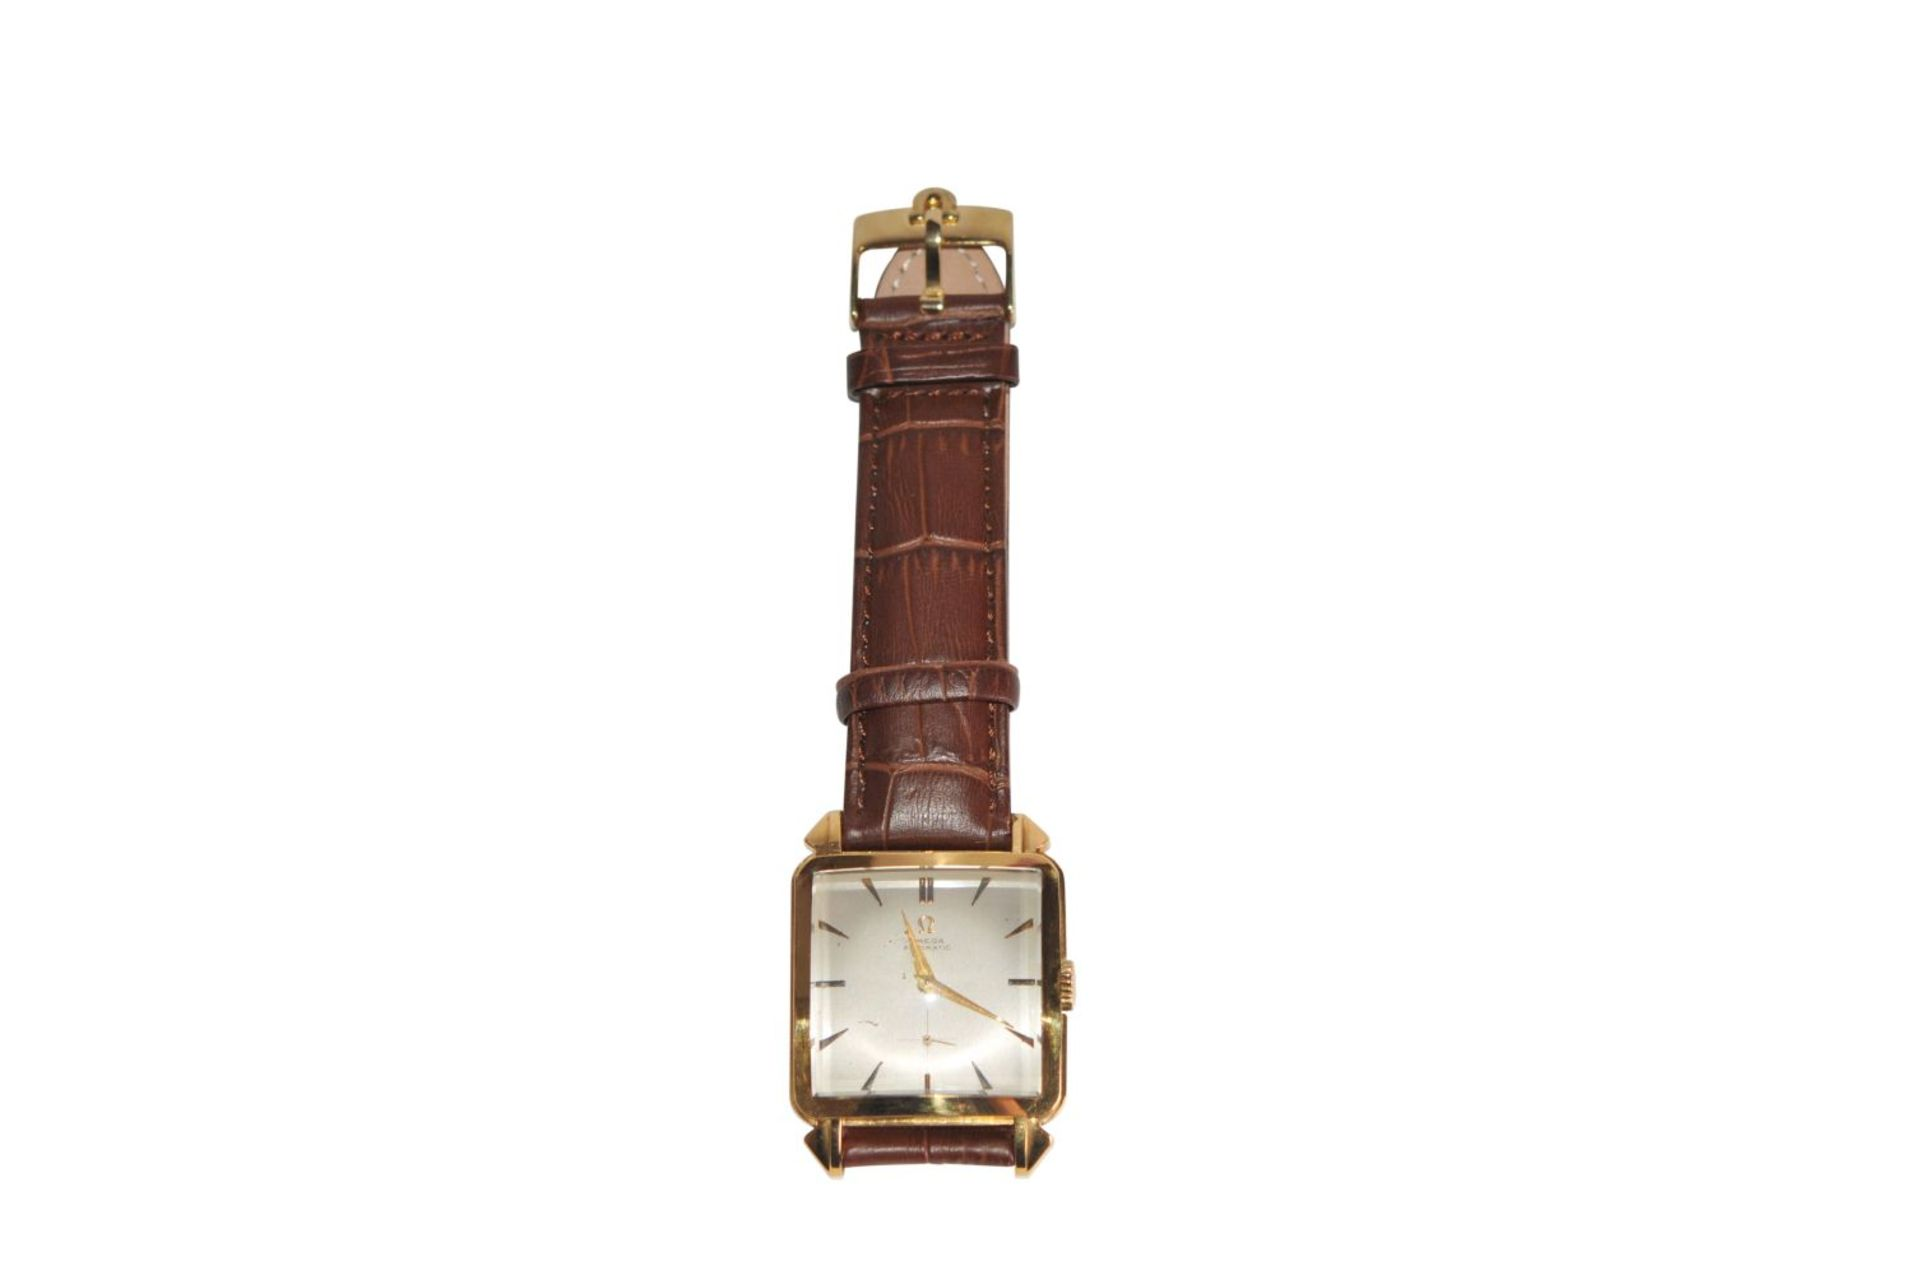 Los 29 - Omega Regtangular Vitage18 Kt Omega men's watch with leather strap automatic caliber 342 with hammer